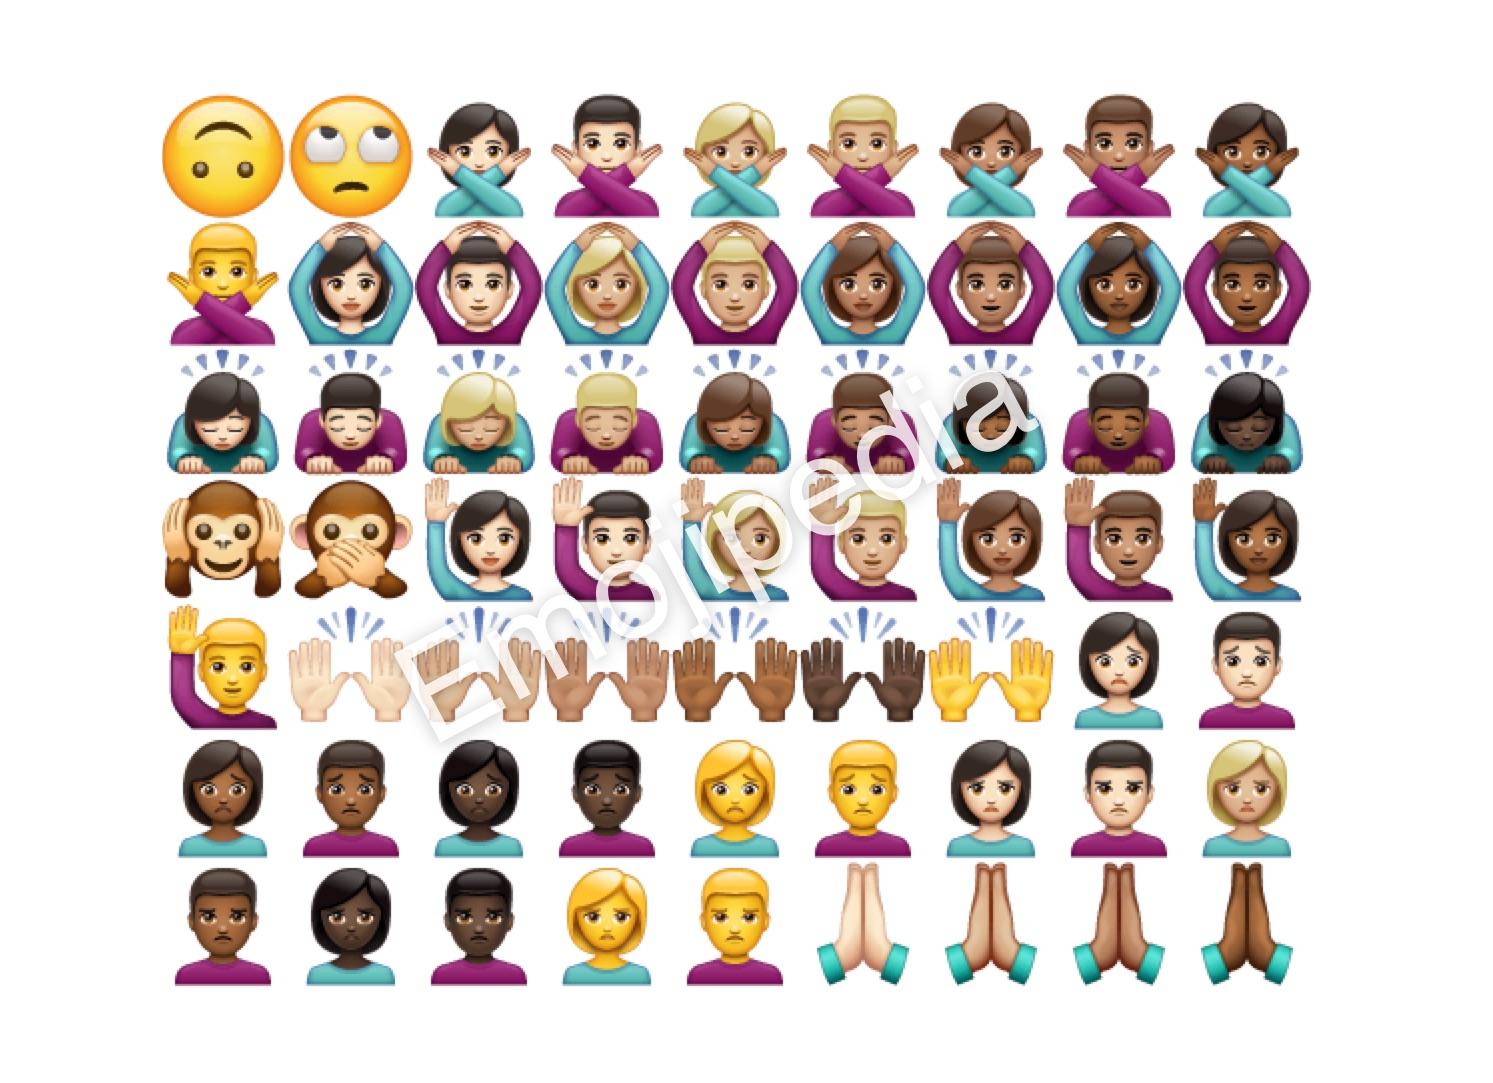 WhatsApp's ditching Apple's emoji for its own